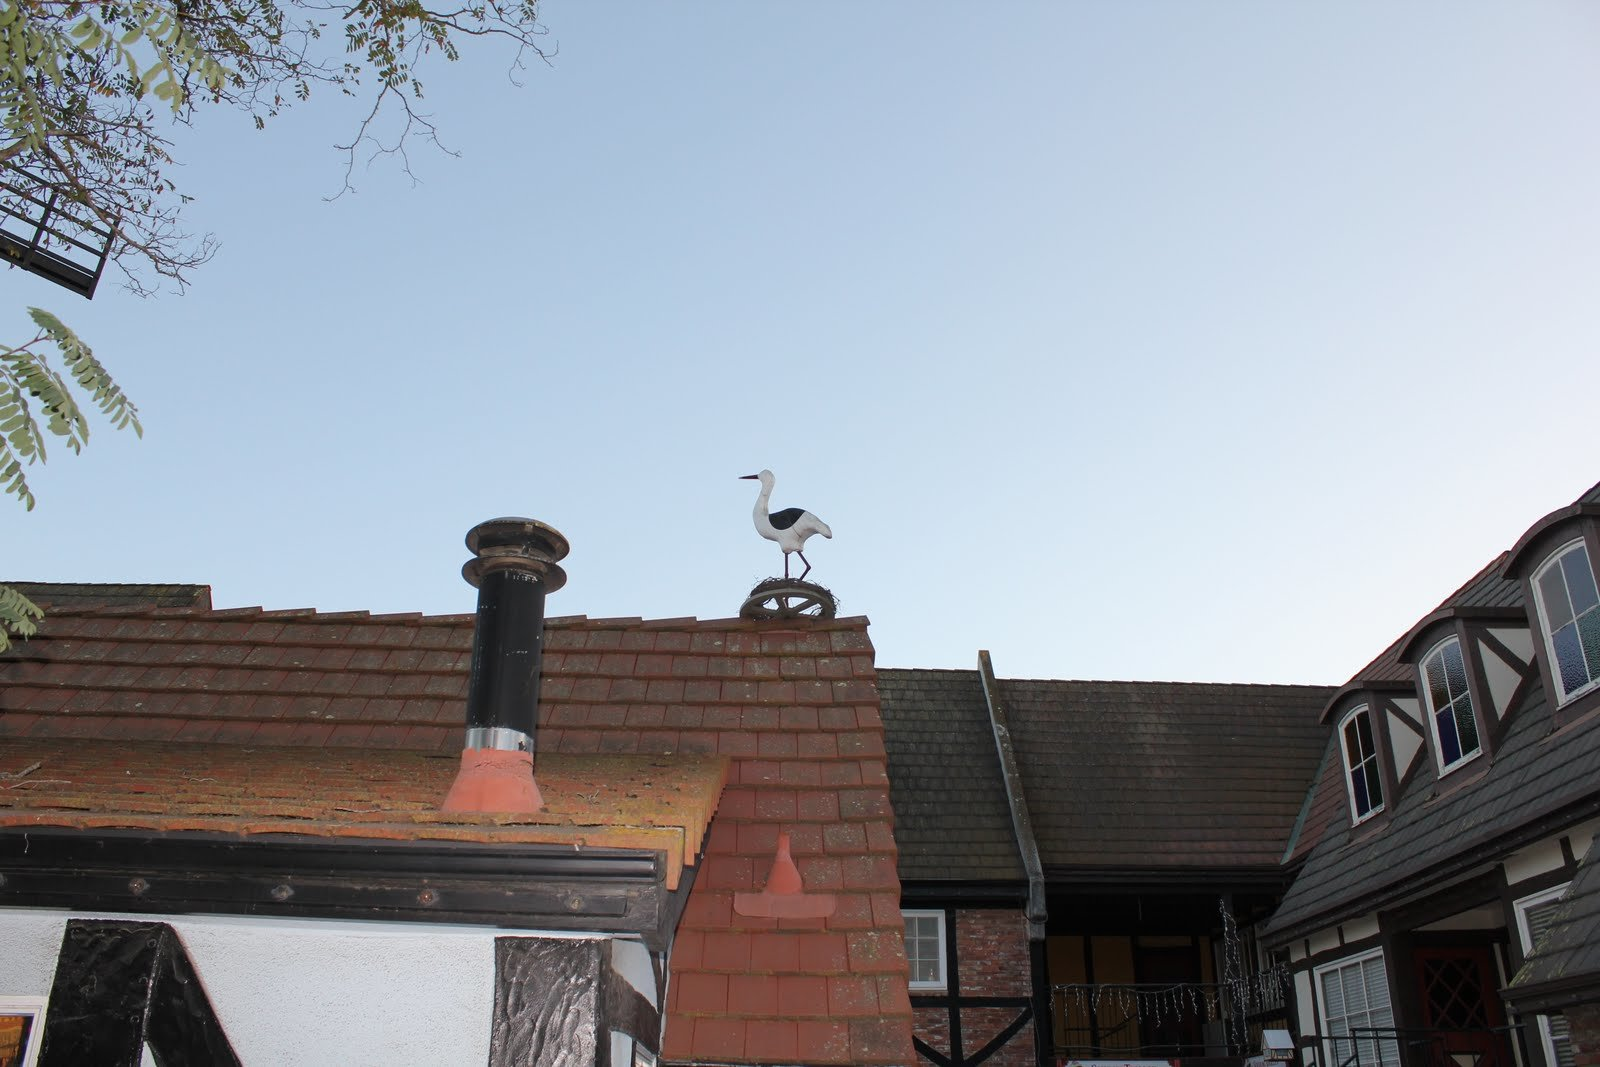 storks on the rooftops in solvang california